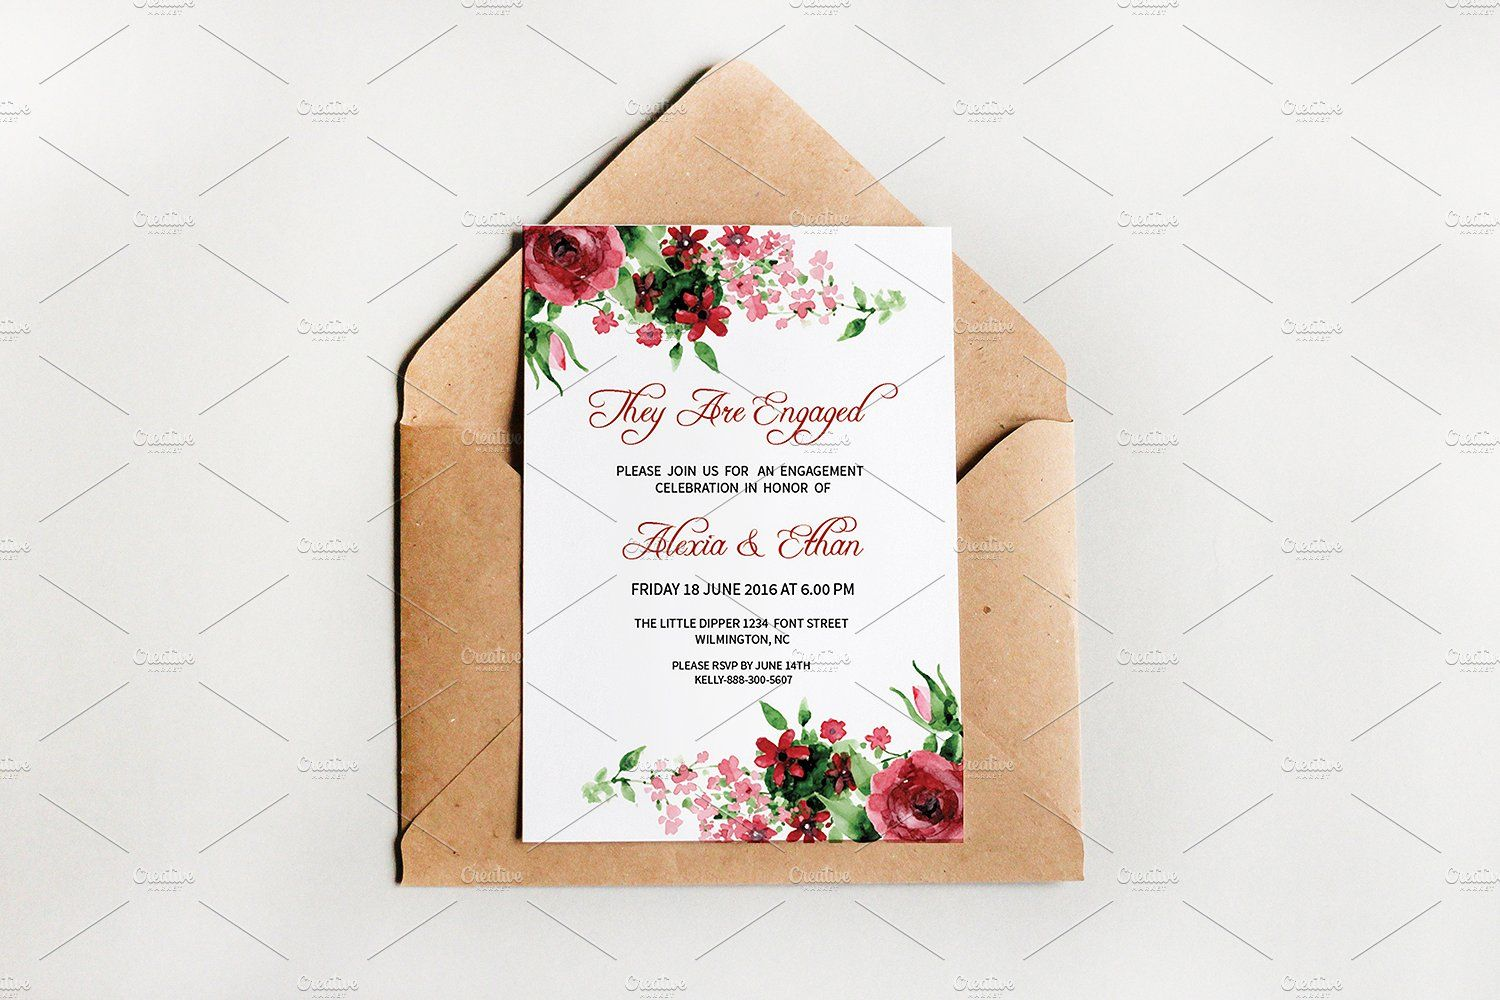 Engagement Party Invitation Template by Wedding Templates on ...